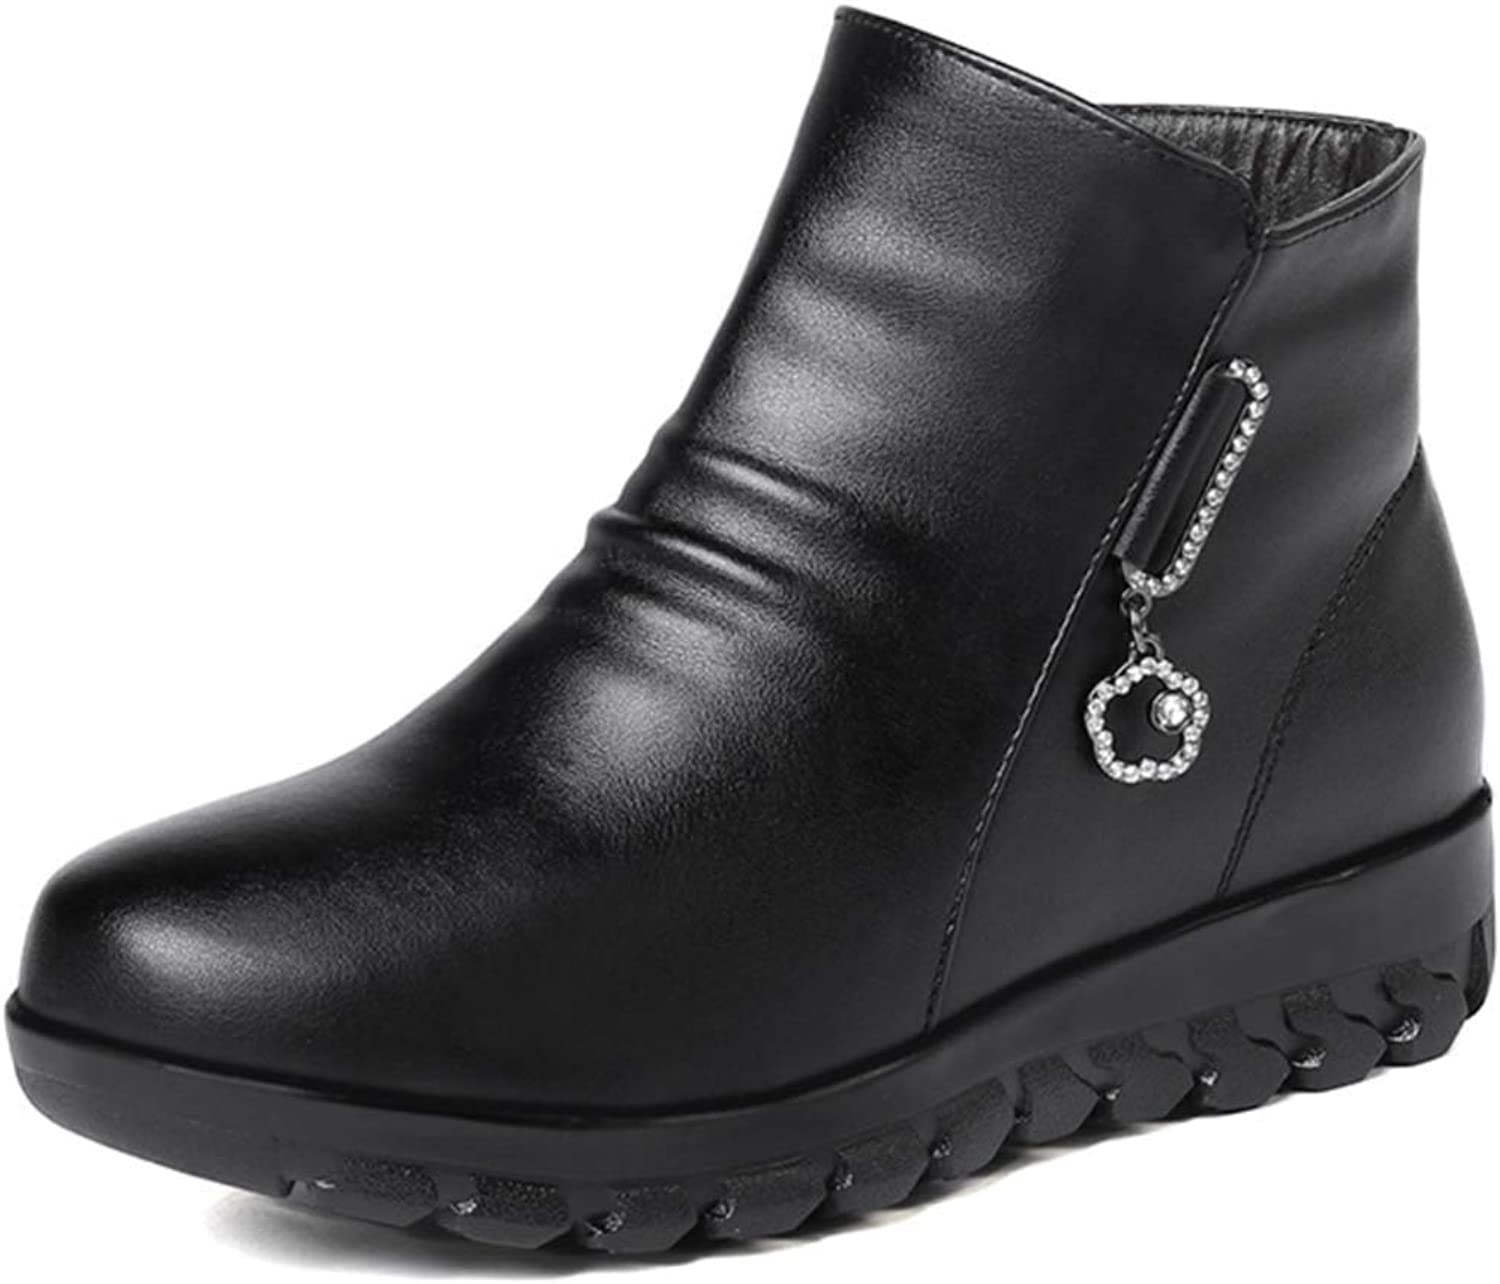 Shiney Women's Leather Boots Warm Plus Velvet Wool Cotton shoes Round Head